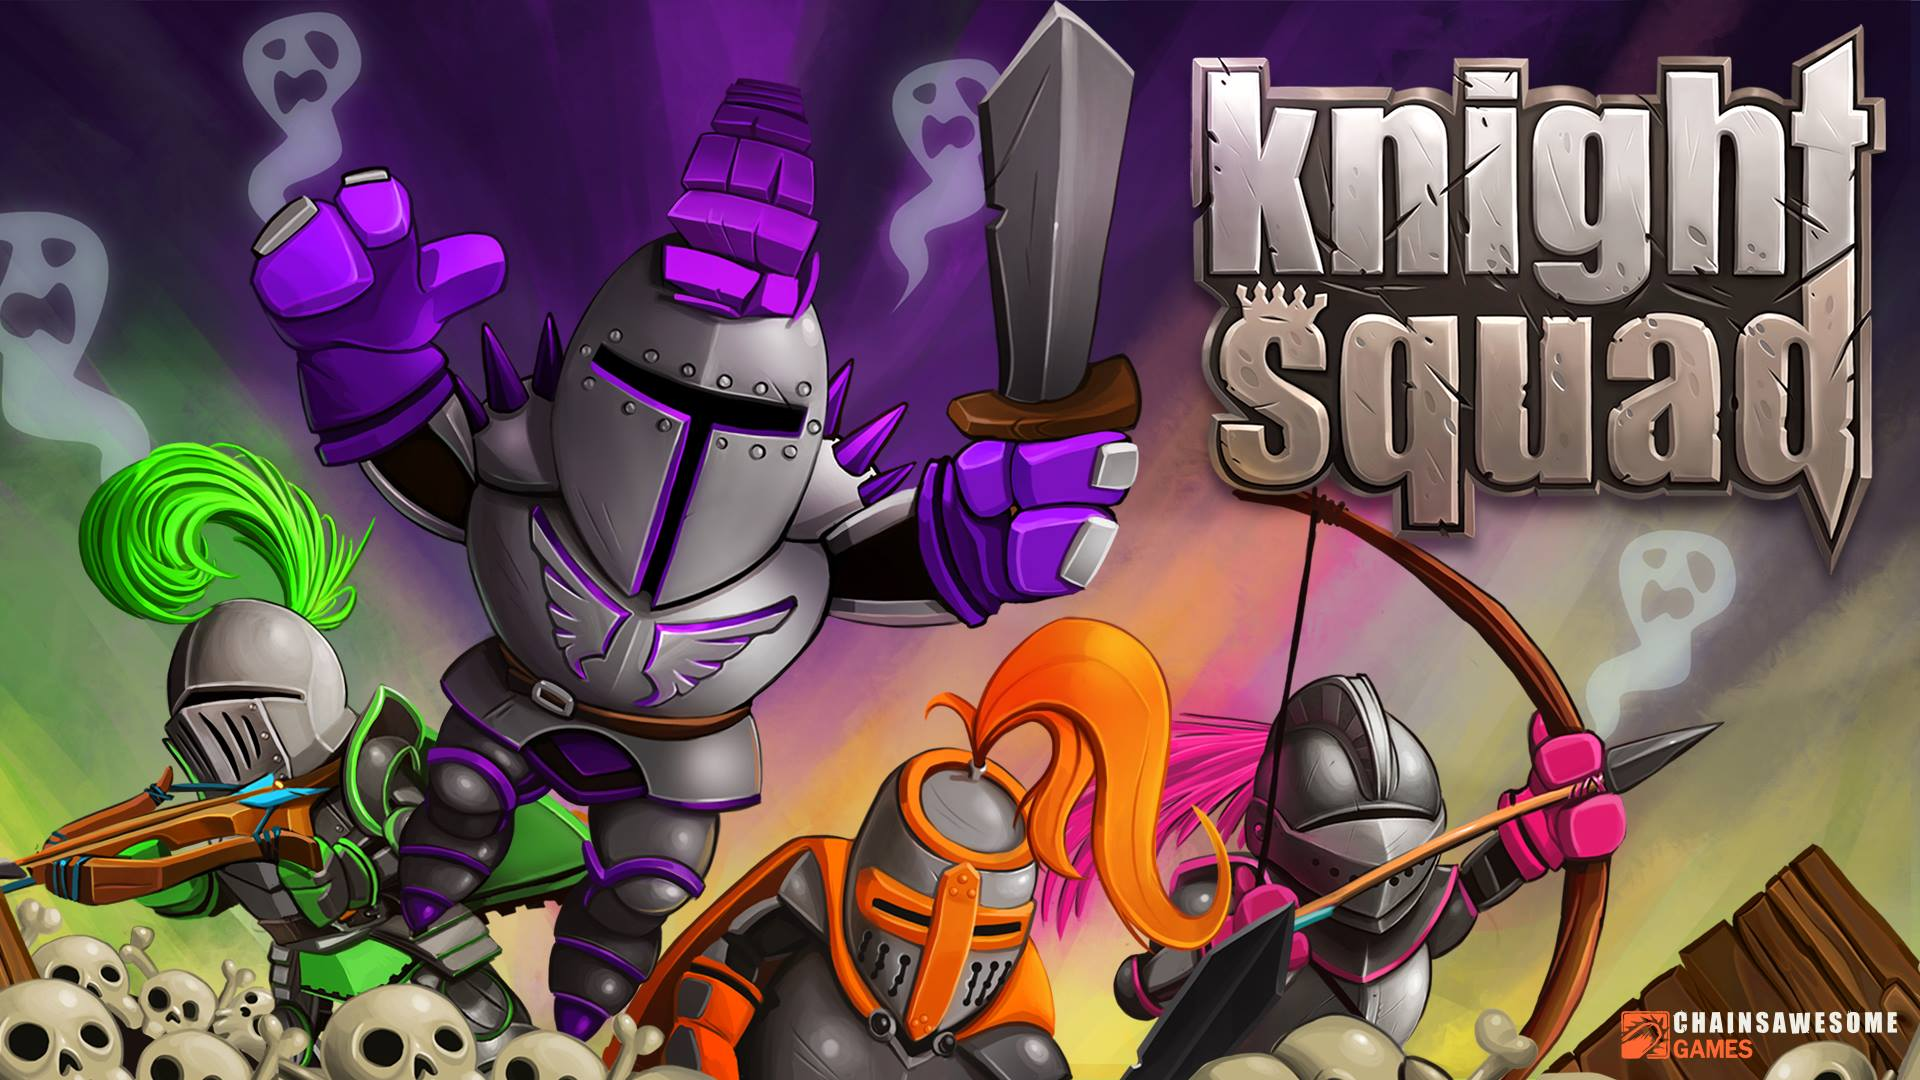 HQ Knight Squad Wallpapers | File 242.65Kb